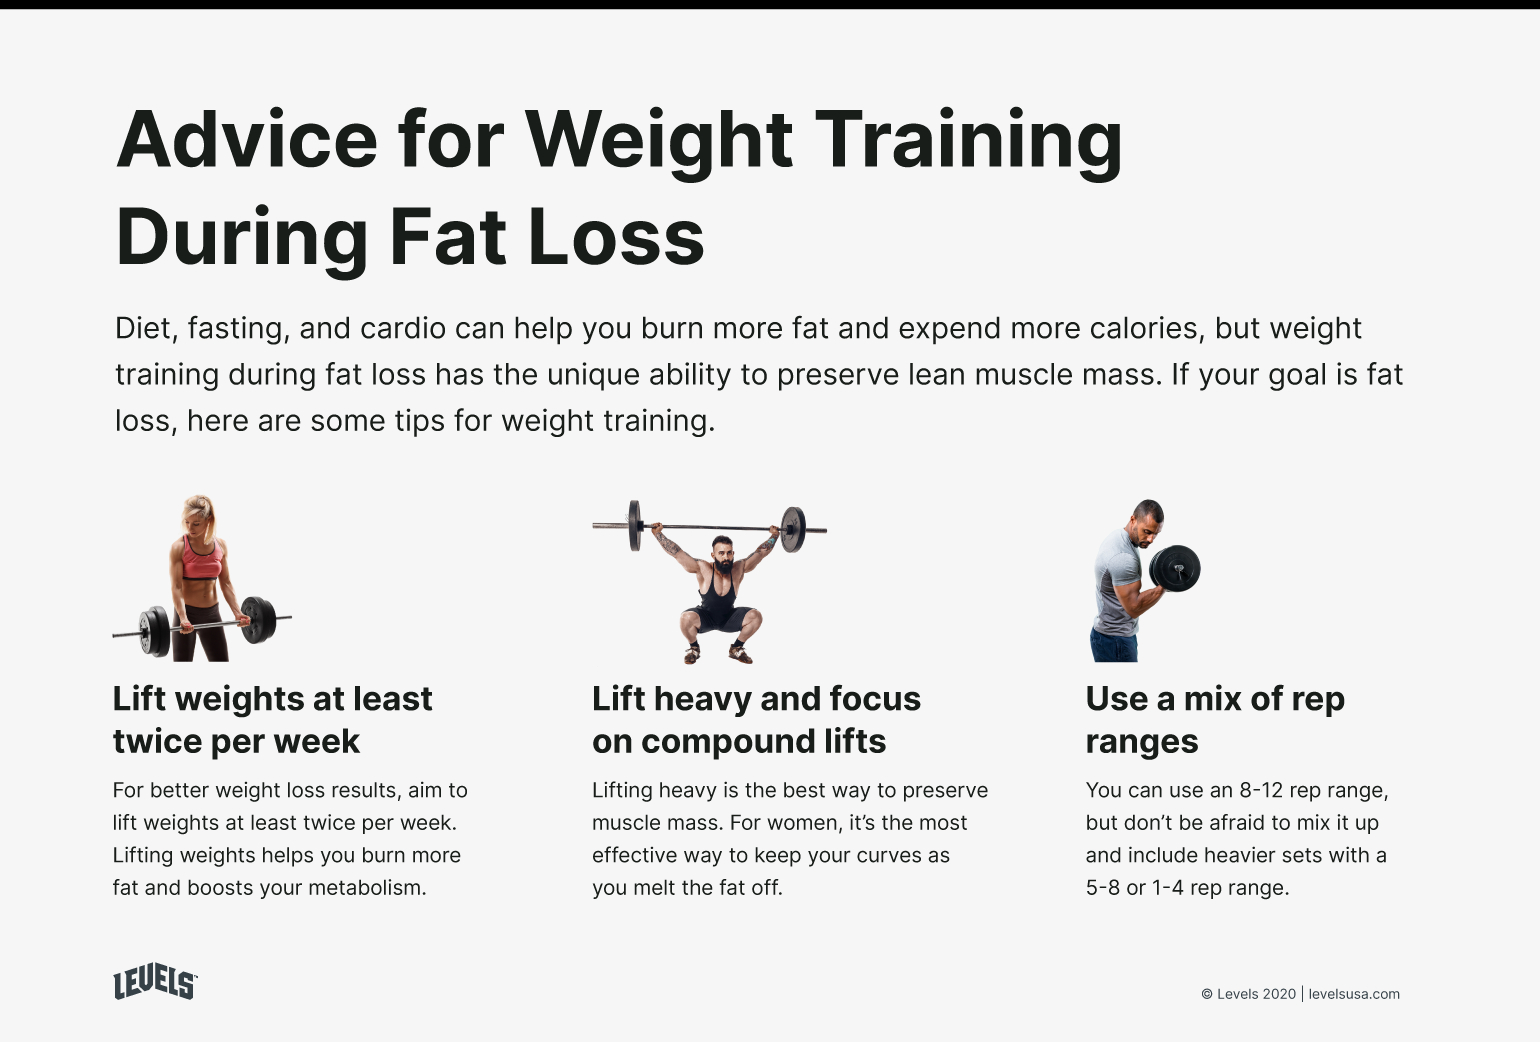 High Reps vs Low Reps - Advice For Weight Training During Fat Loss Infographic